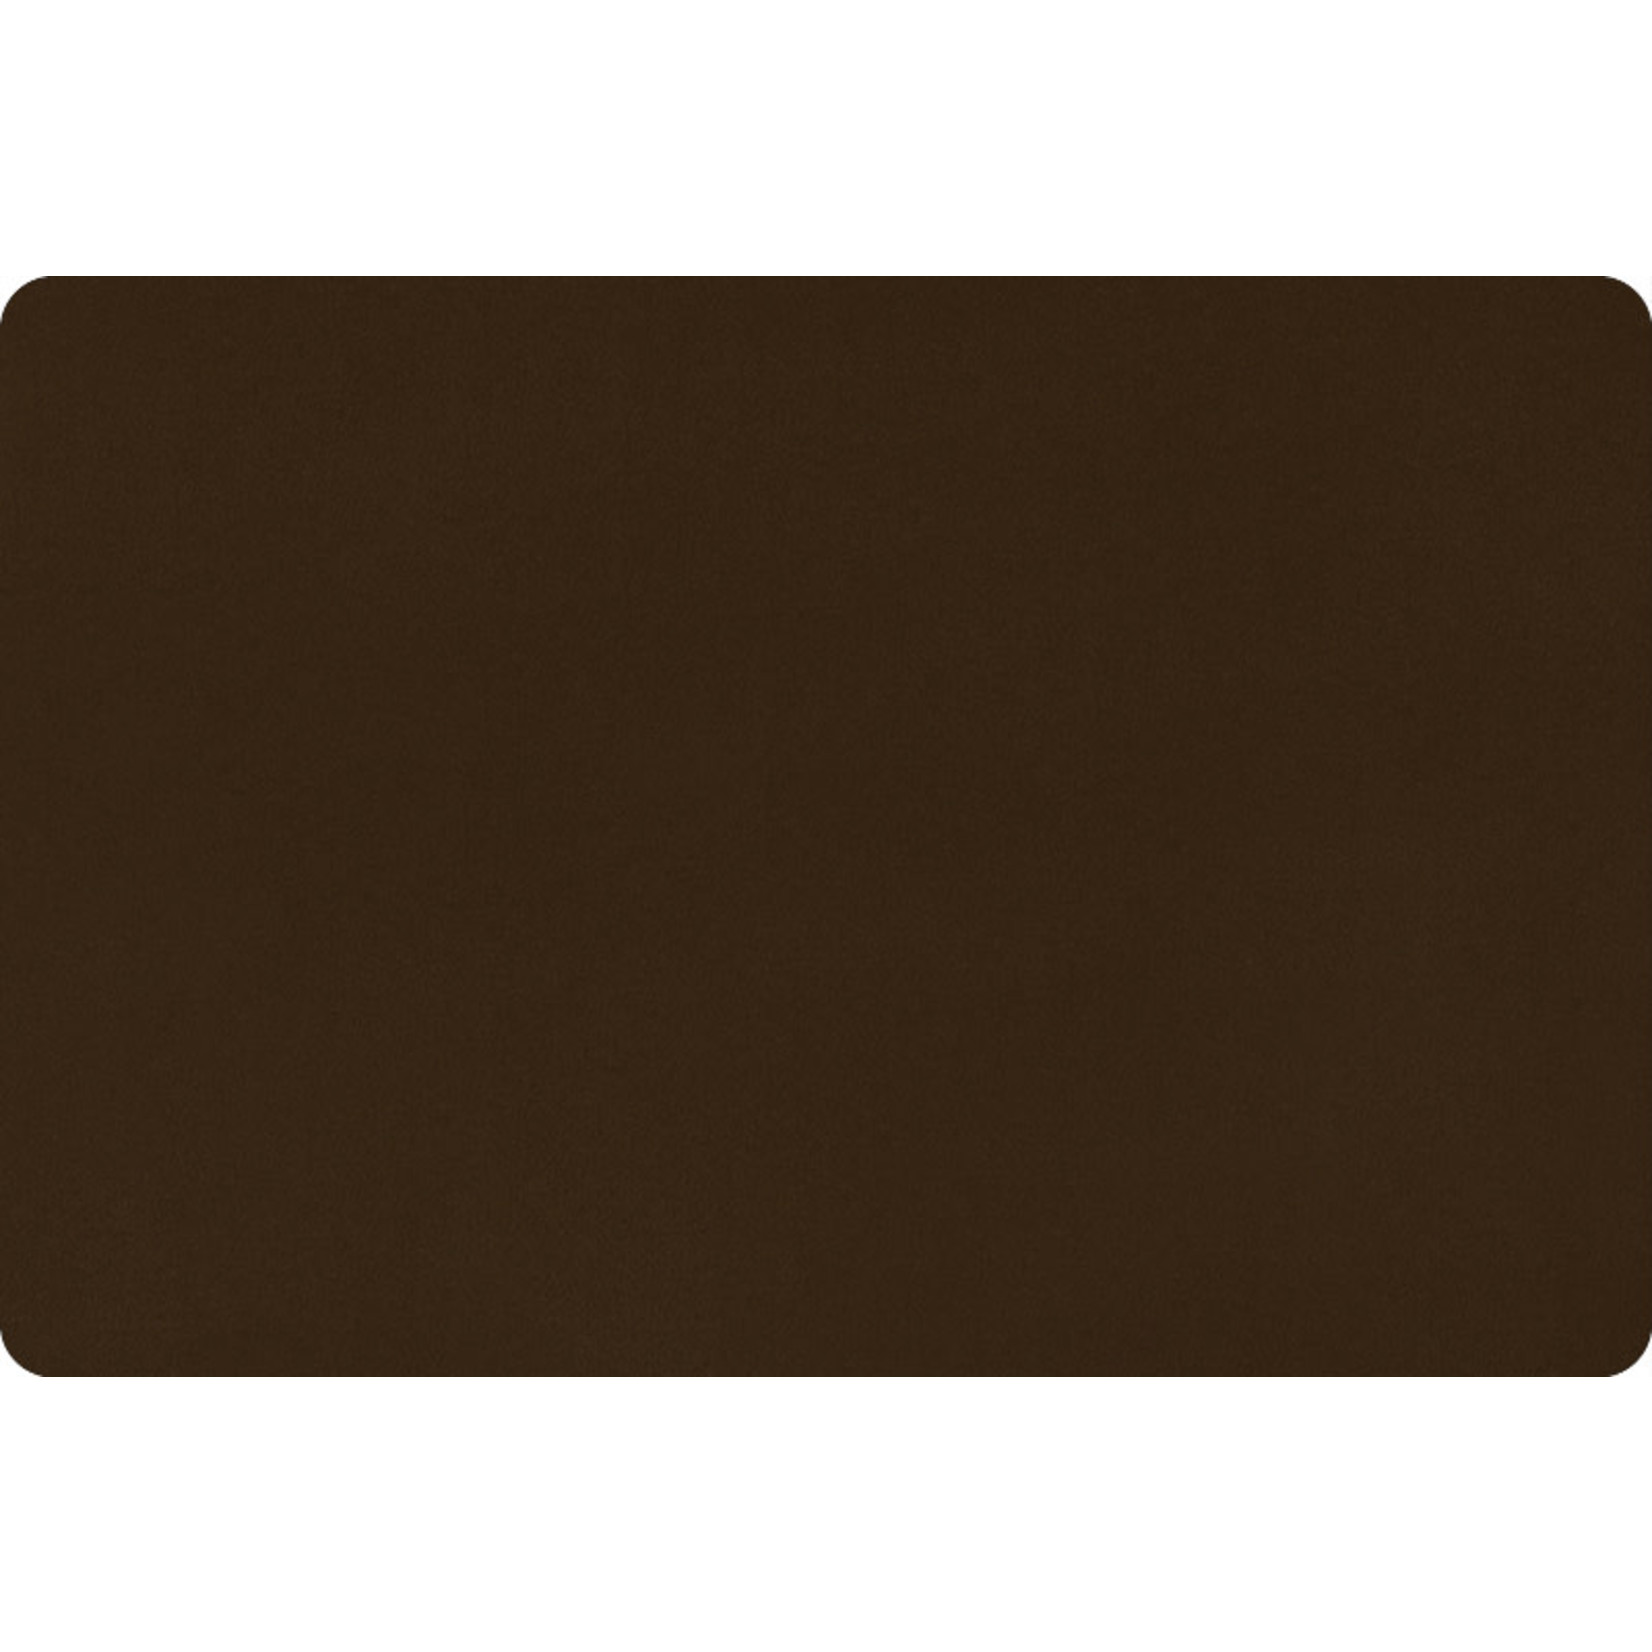 """Shannon Fabrics Minky, Extra Wide Solid Cuddle3, 90"""" Brown, (by the inch)"""